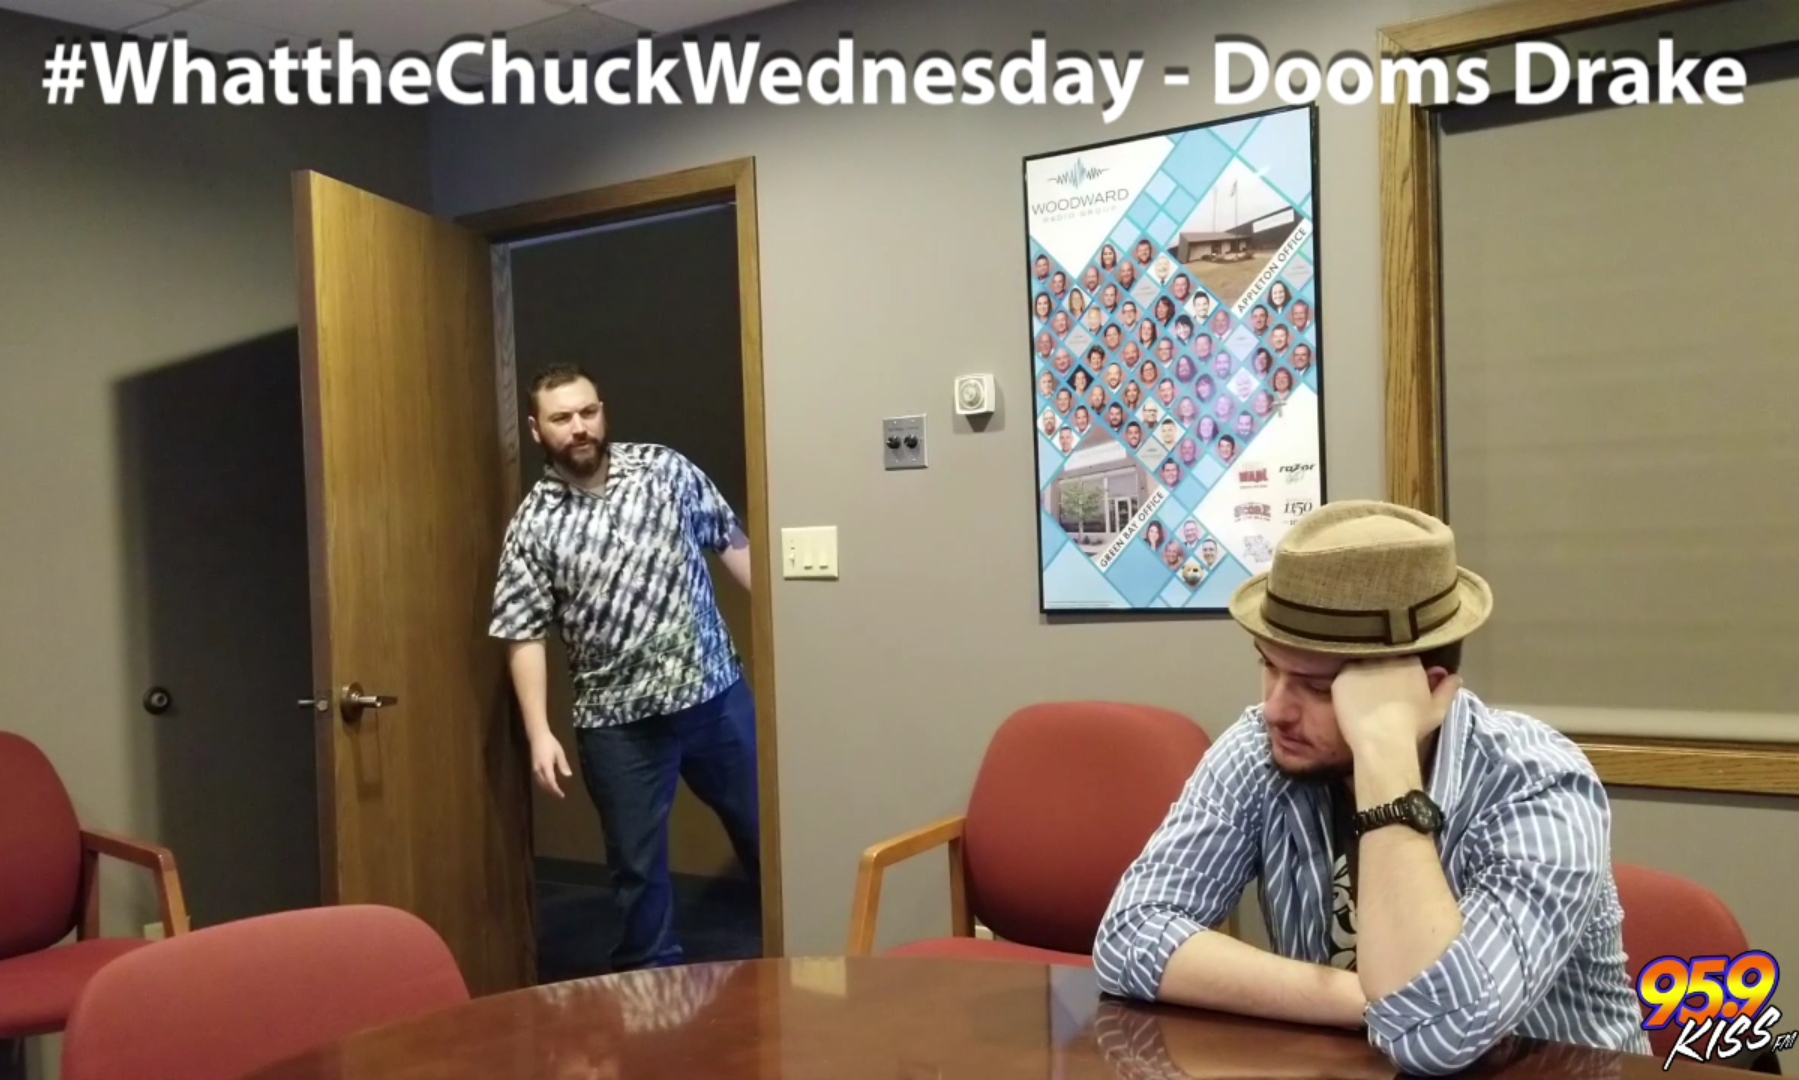 #WhattheChuckWednesdays - Dooms Drake